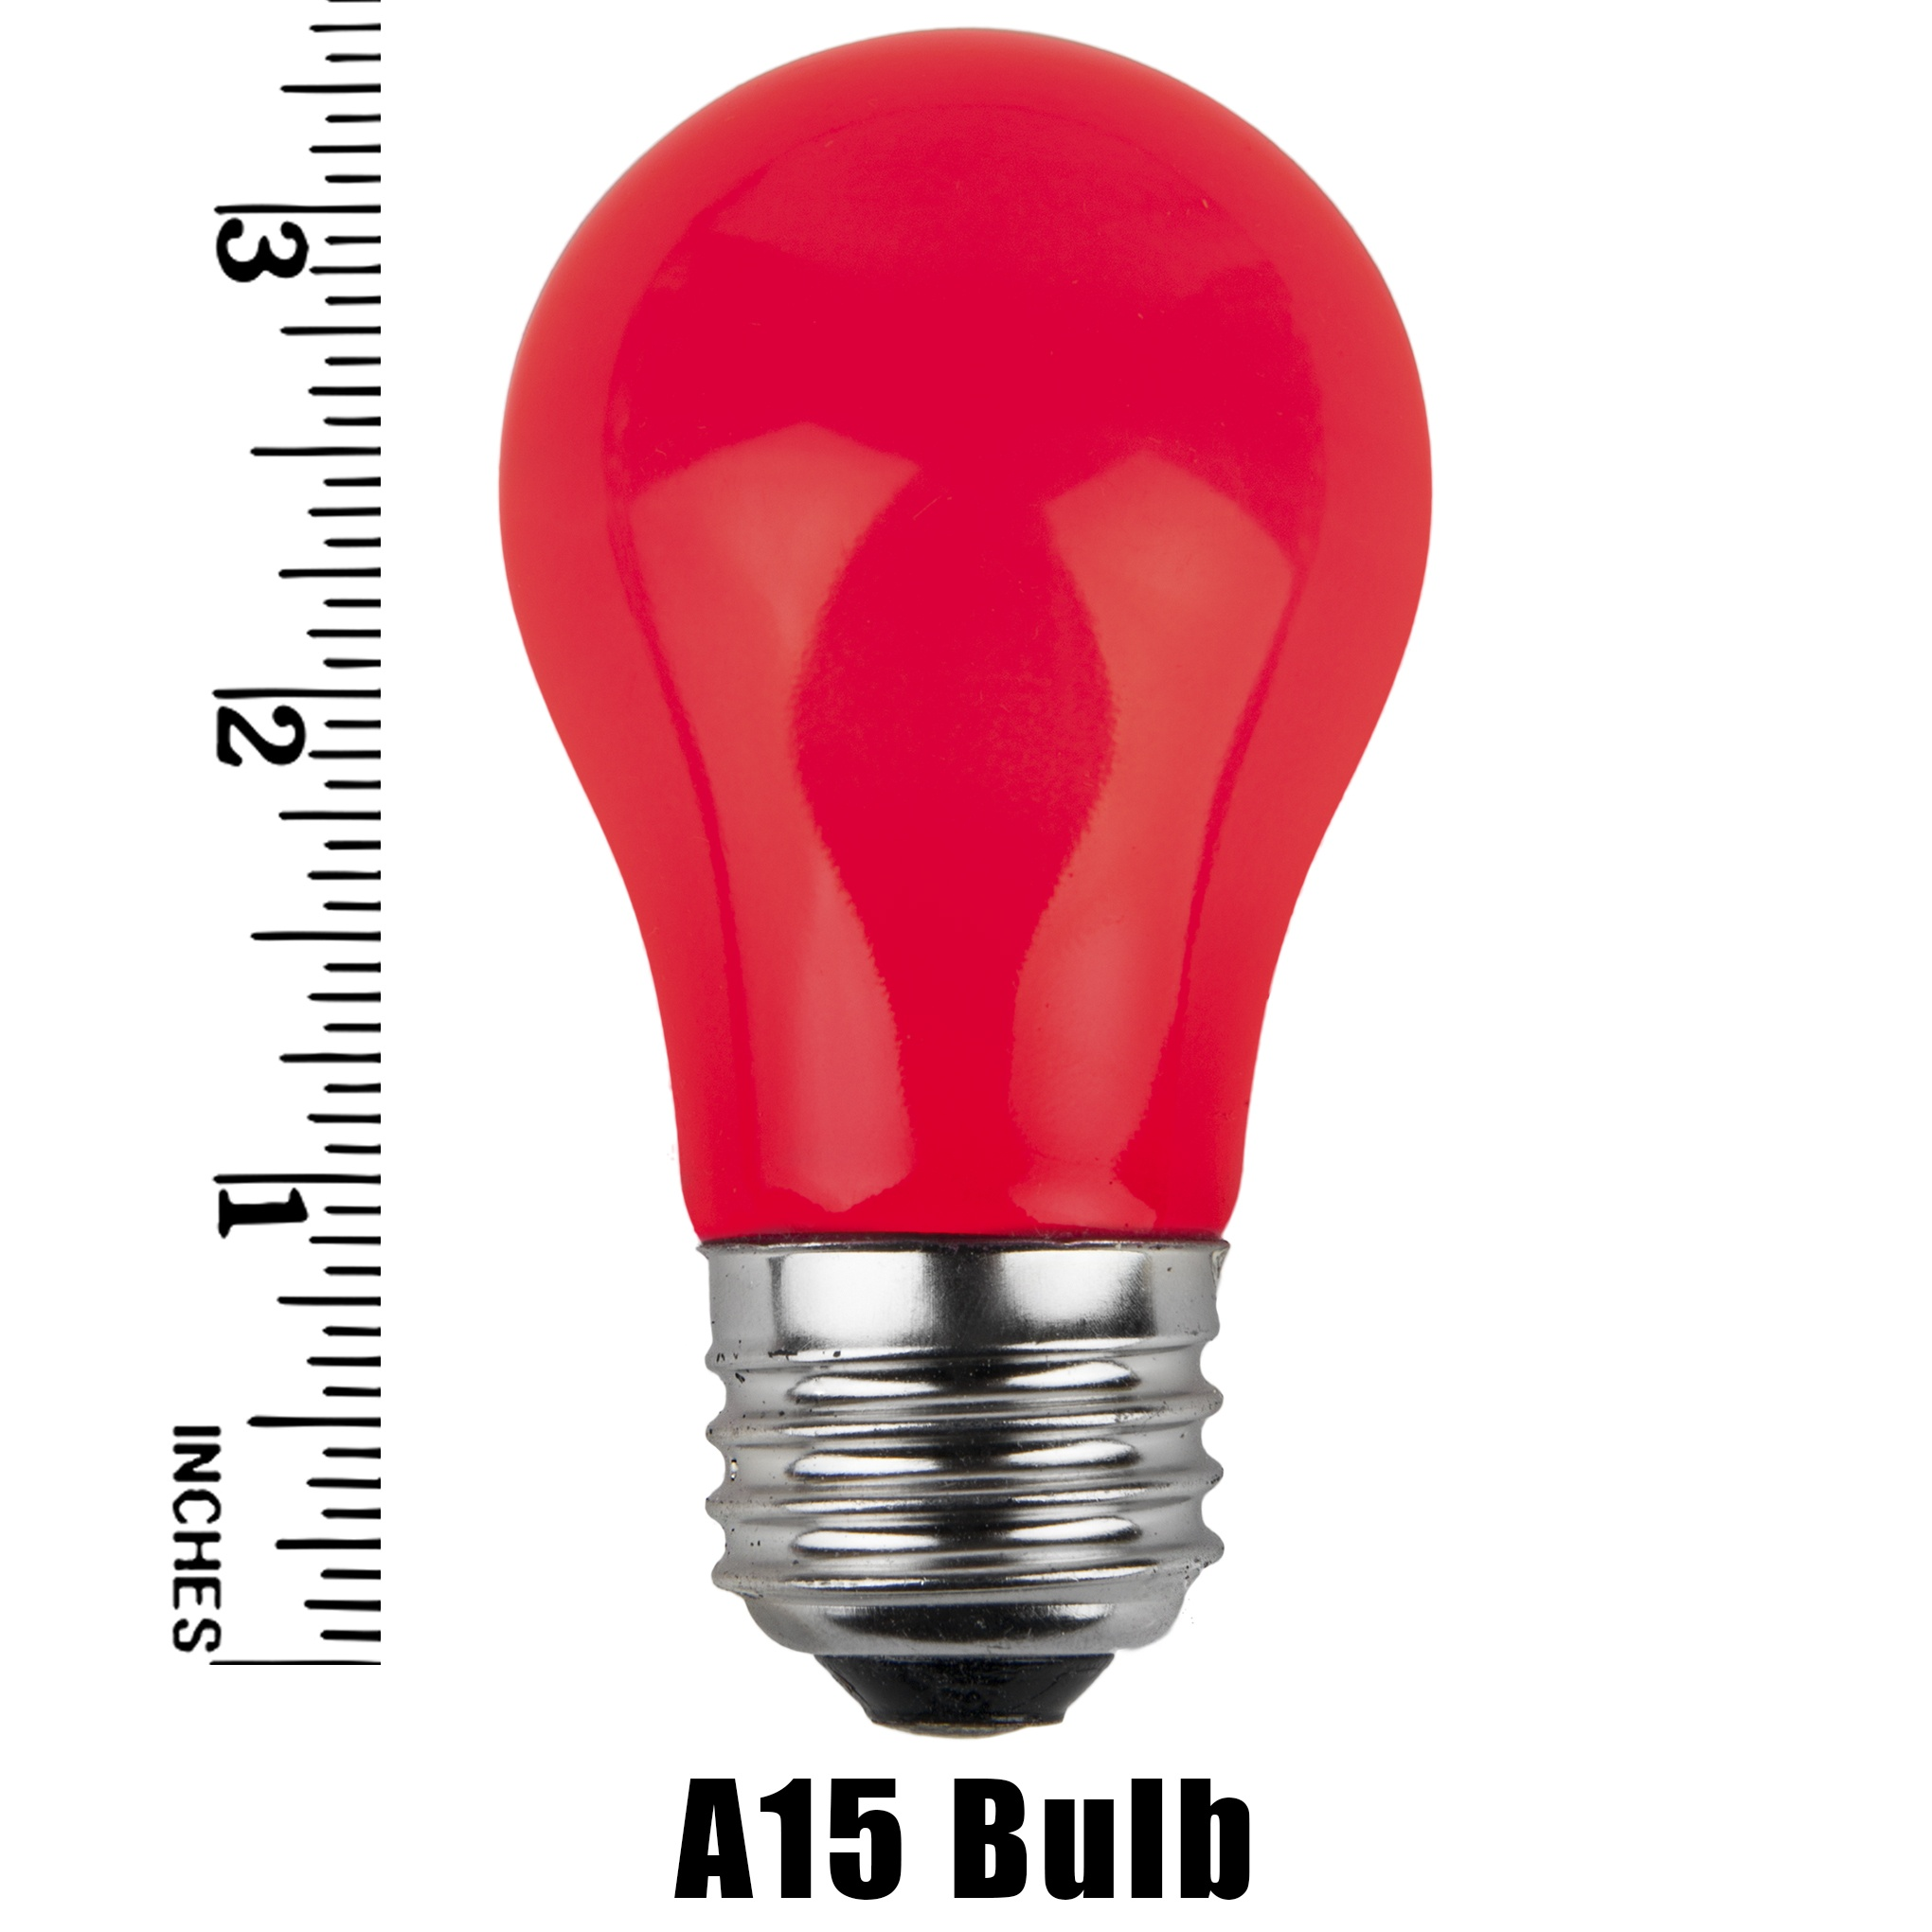 A15 Red Opaque Incandescent Bulb Measurement